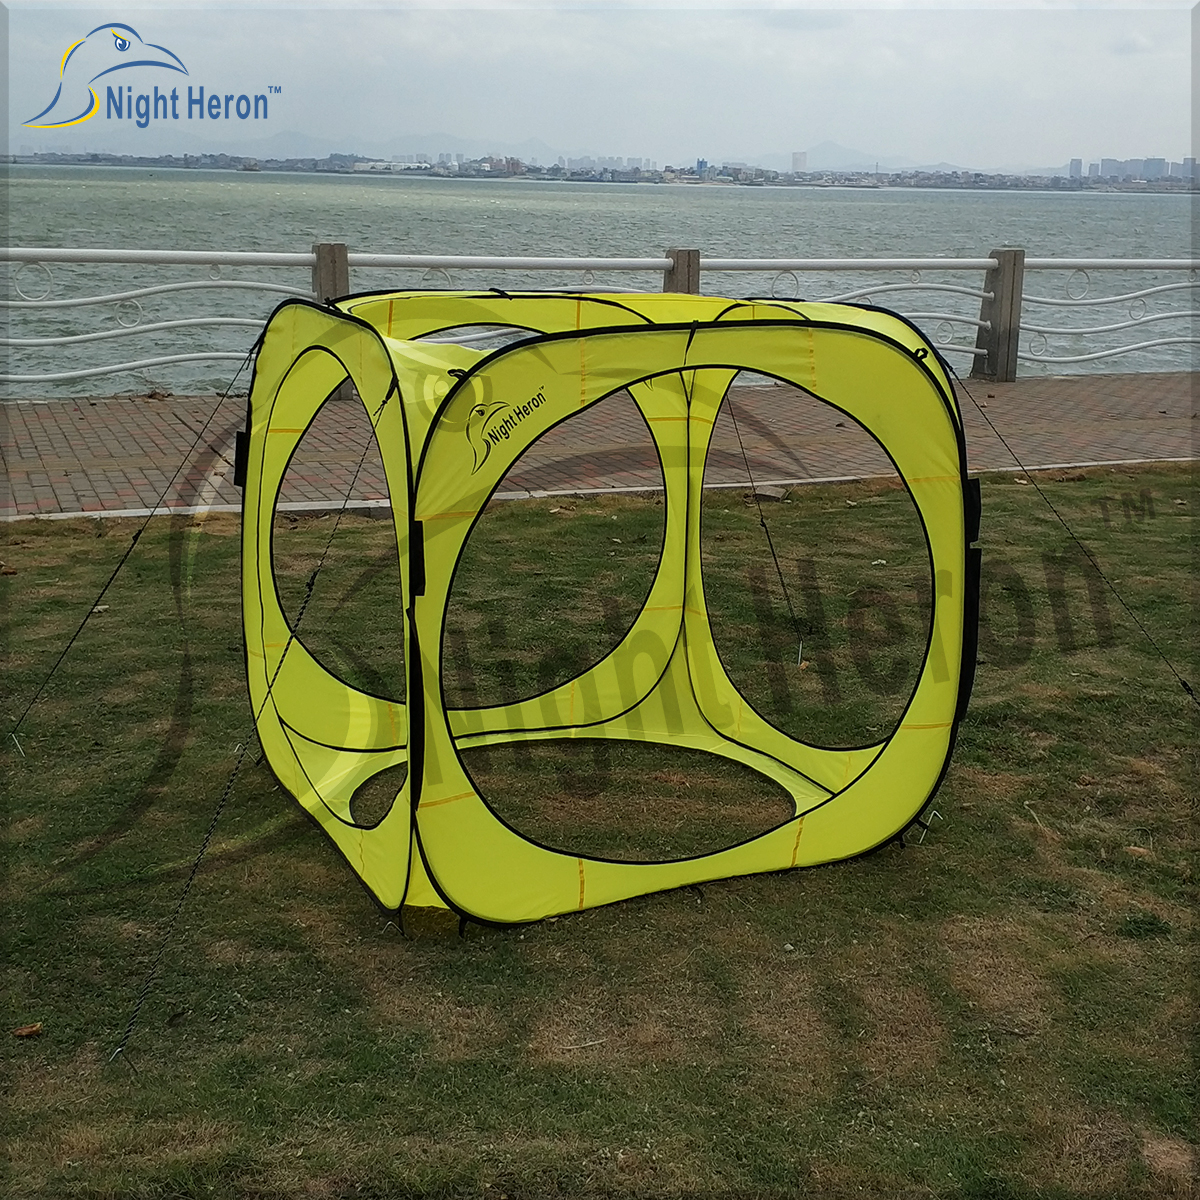 fpv racing pop up cube gates for rc dronenight heron outdoor